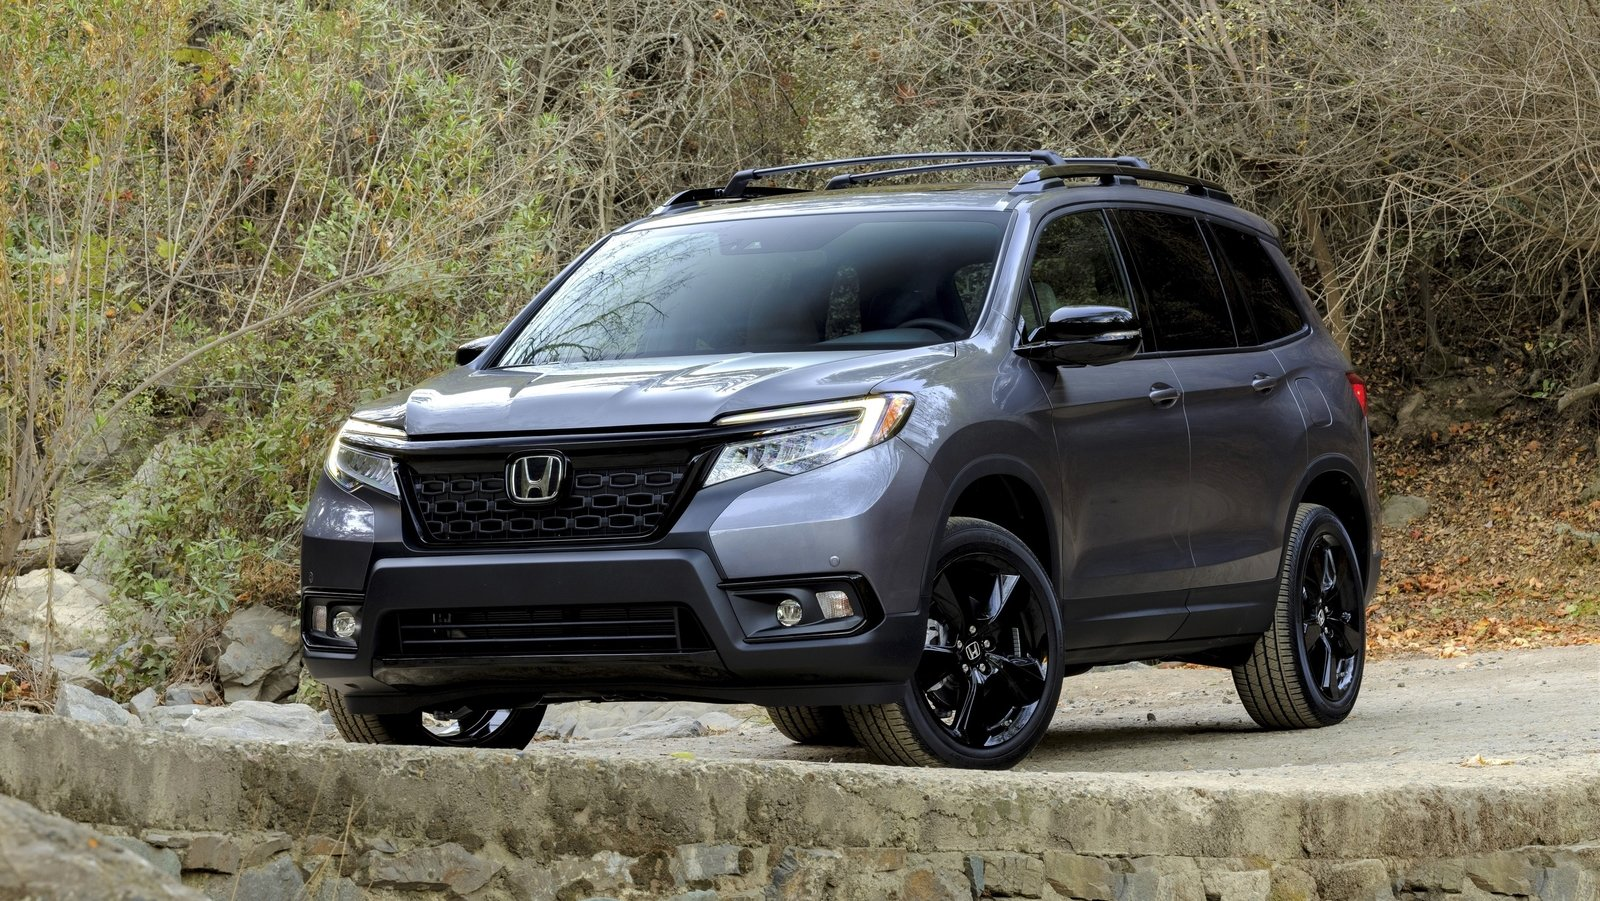 73 The Best 2020 Honda Pilot Research New